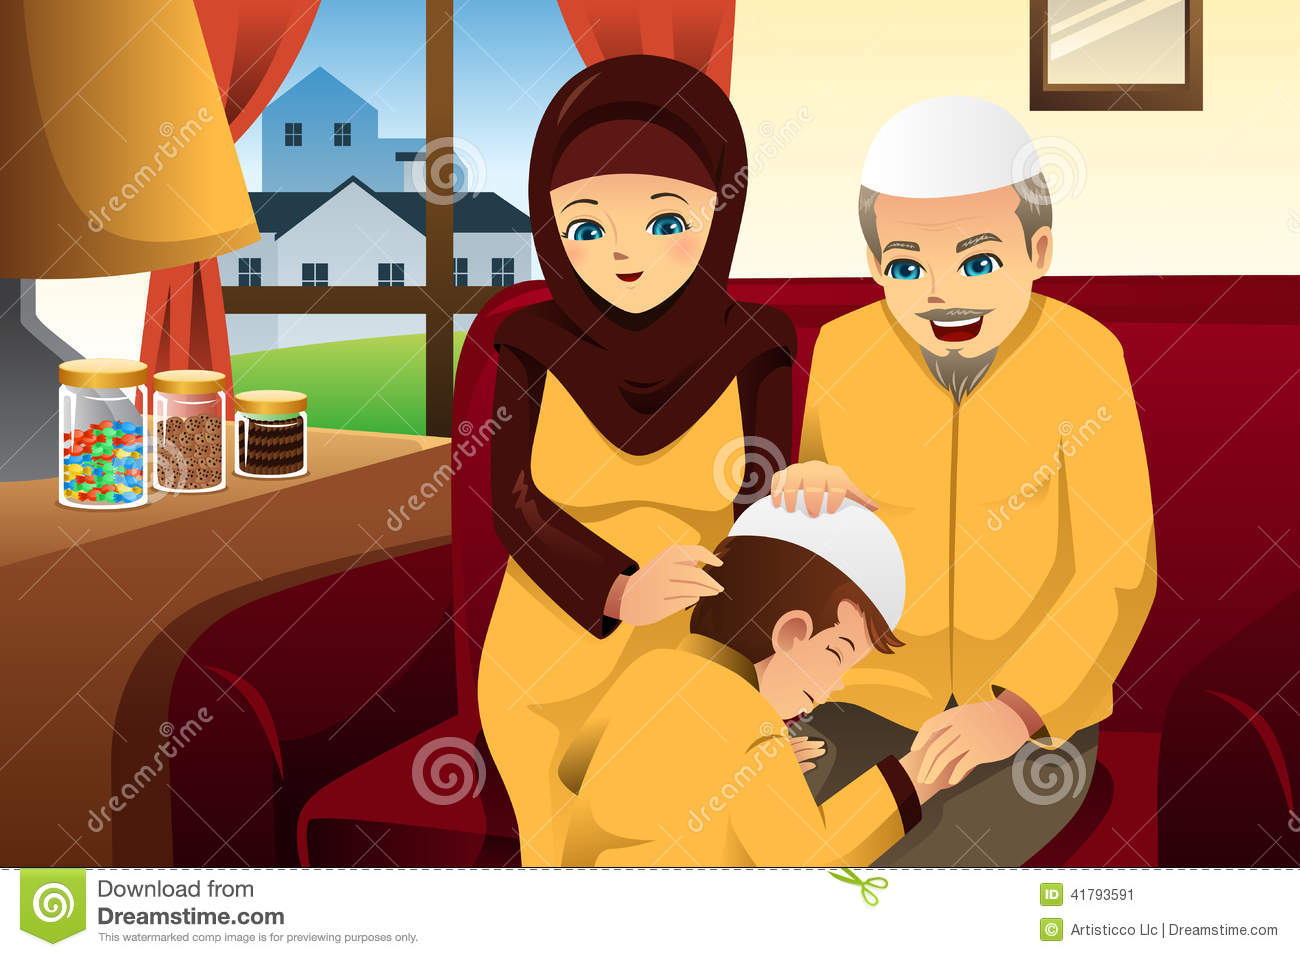 Download Family Eid Al-Fitr Feast - family-celebrating-eid-al-fitr-vector-illustration-happy-41793591  You Should Have_476471 .jpg